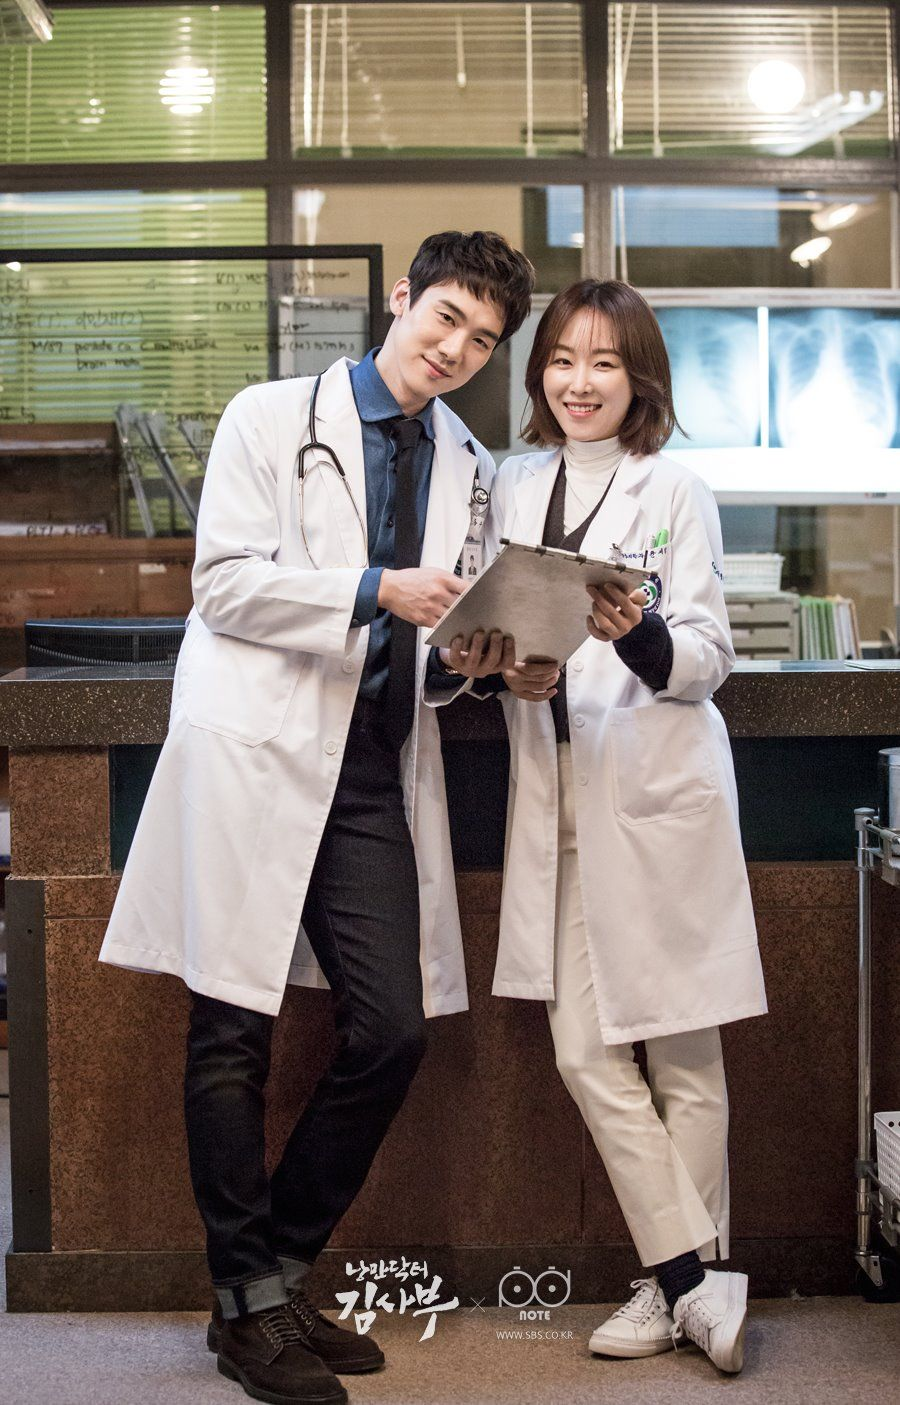 romantic doctor photo